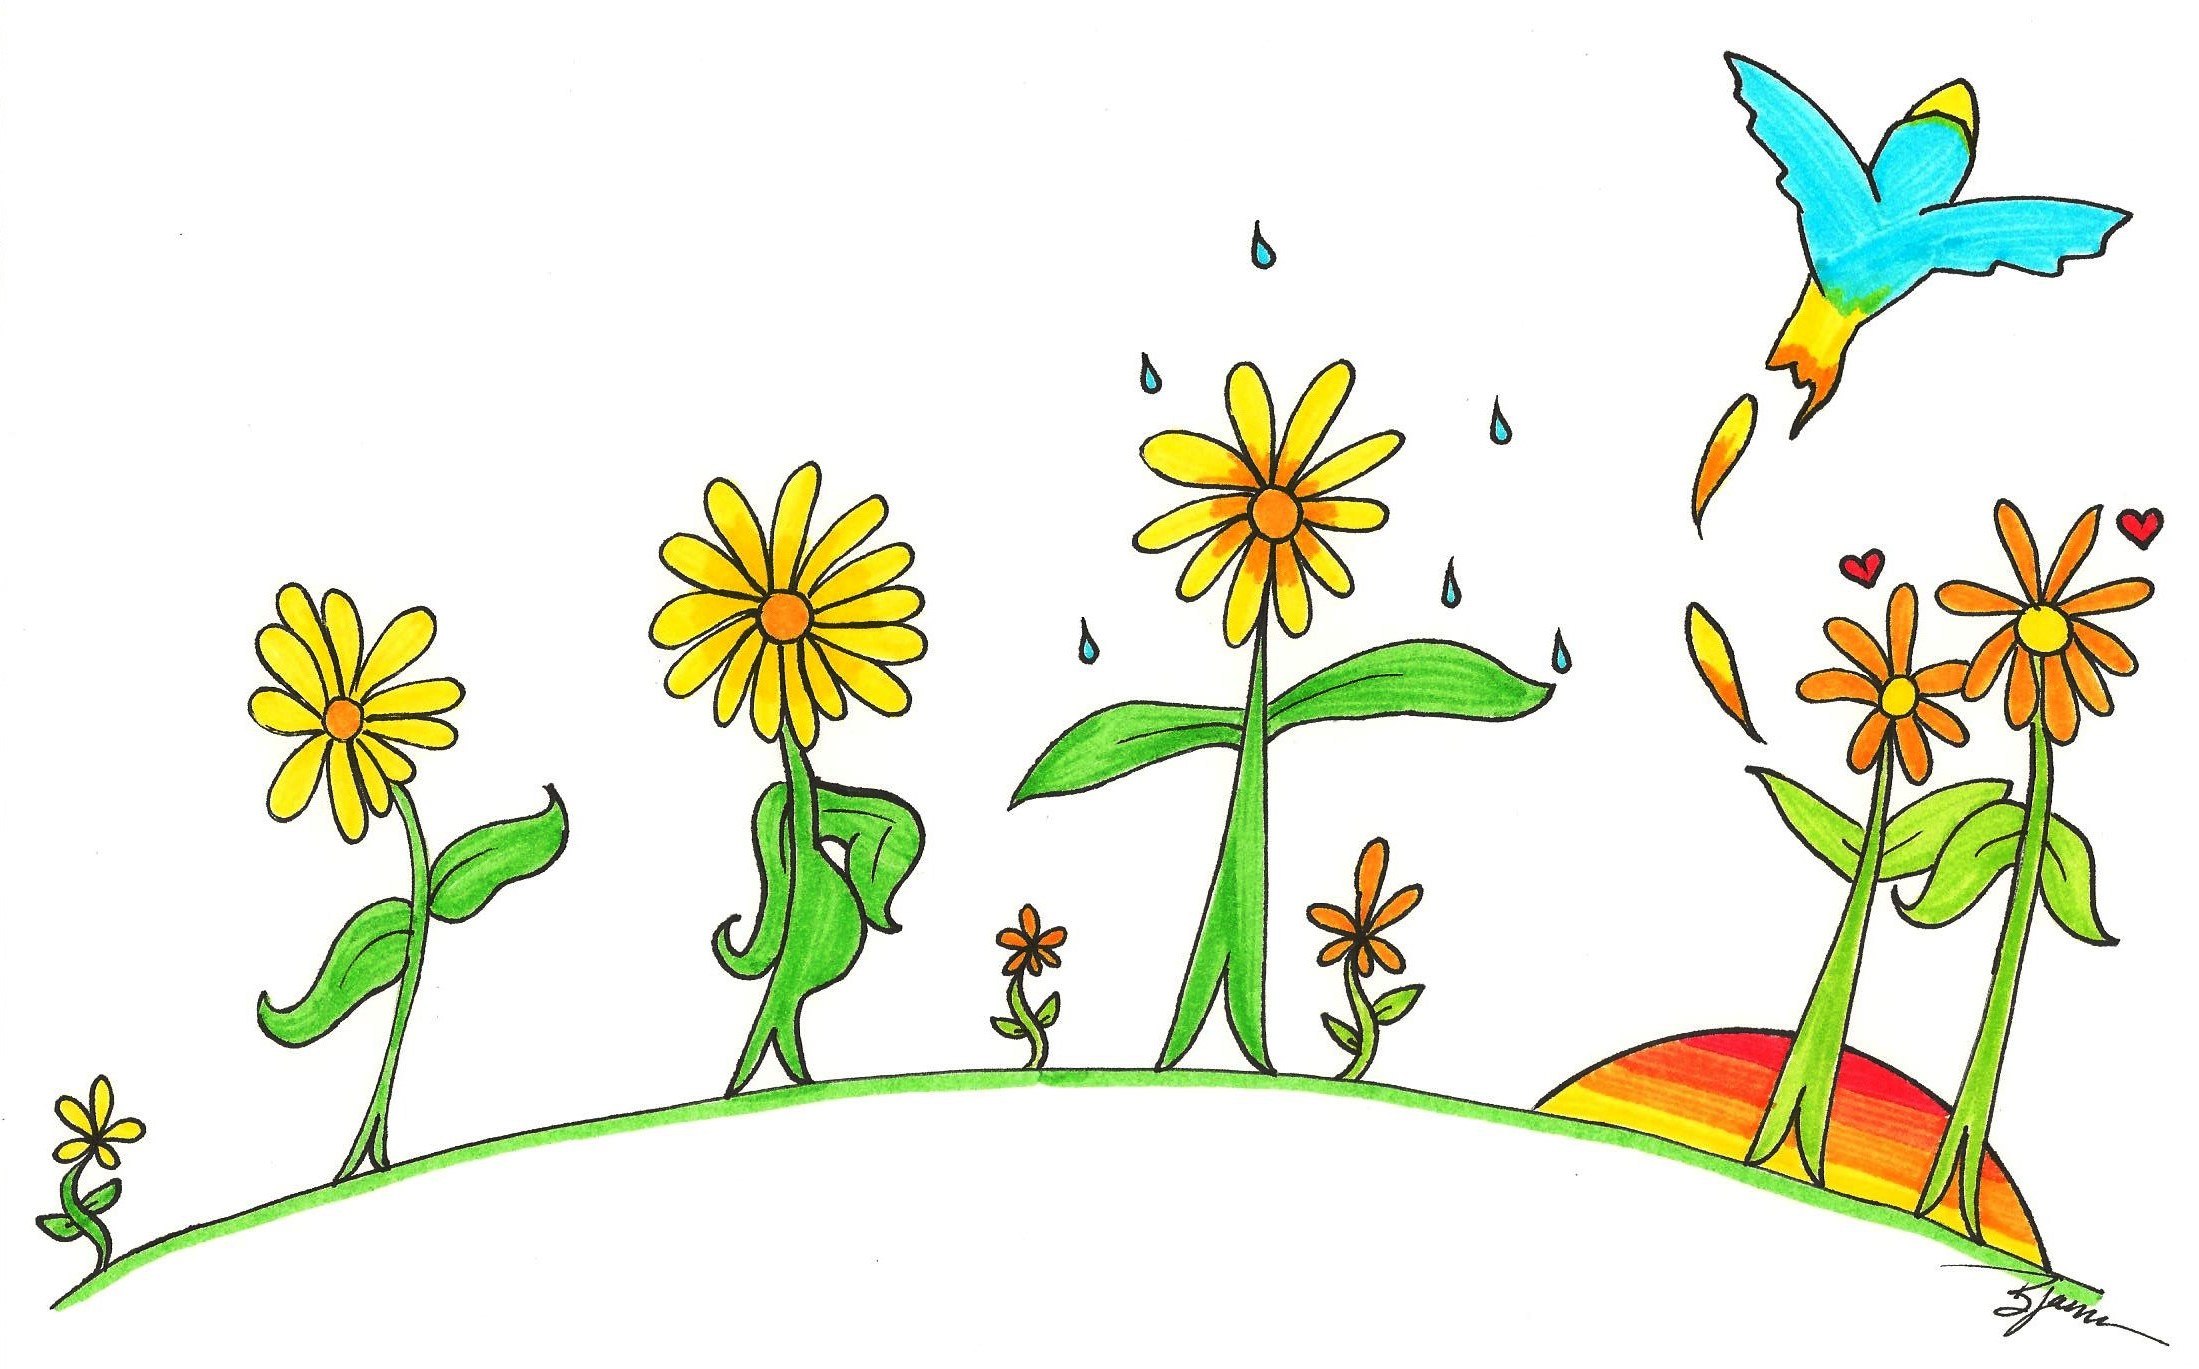 The Life of Flowers. (c) 2014. Marker. Bobby James. For My Mom.